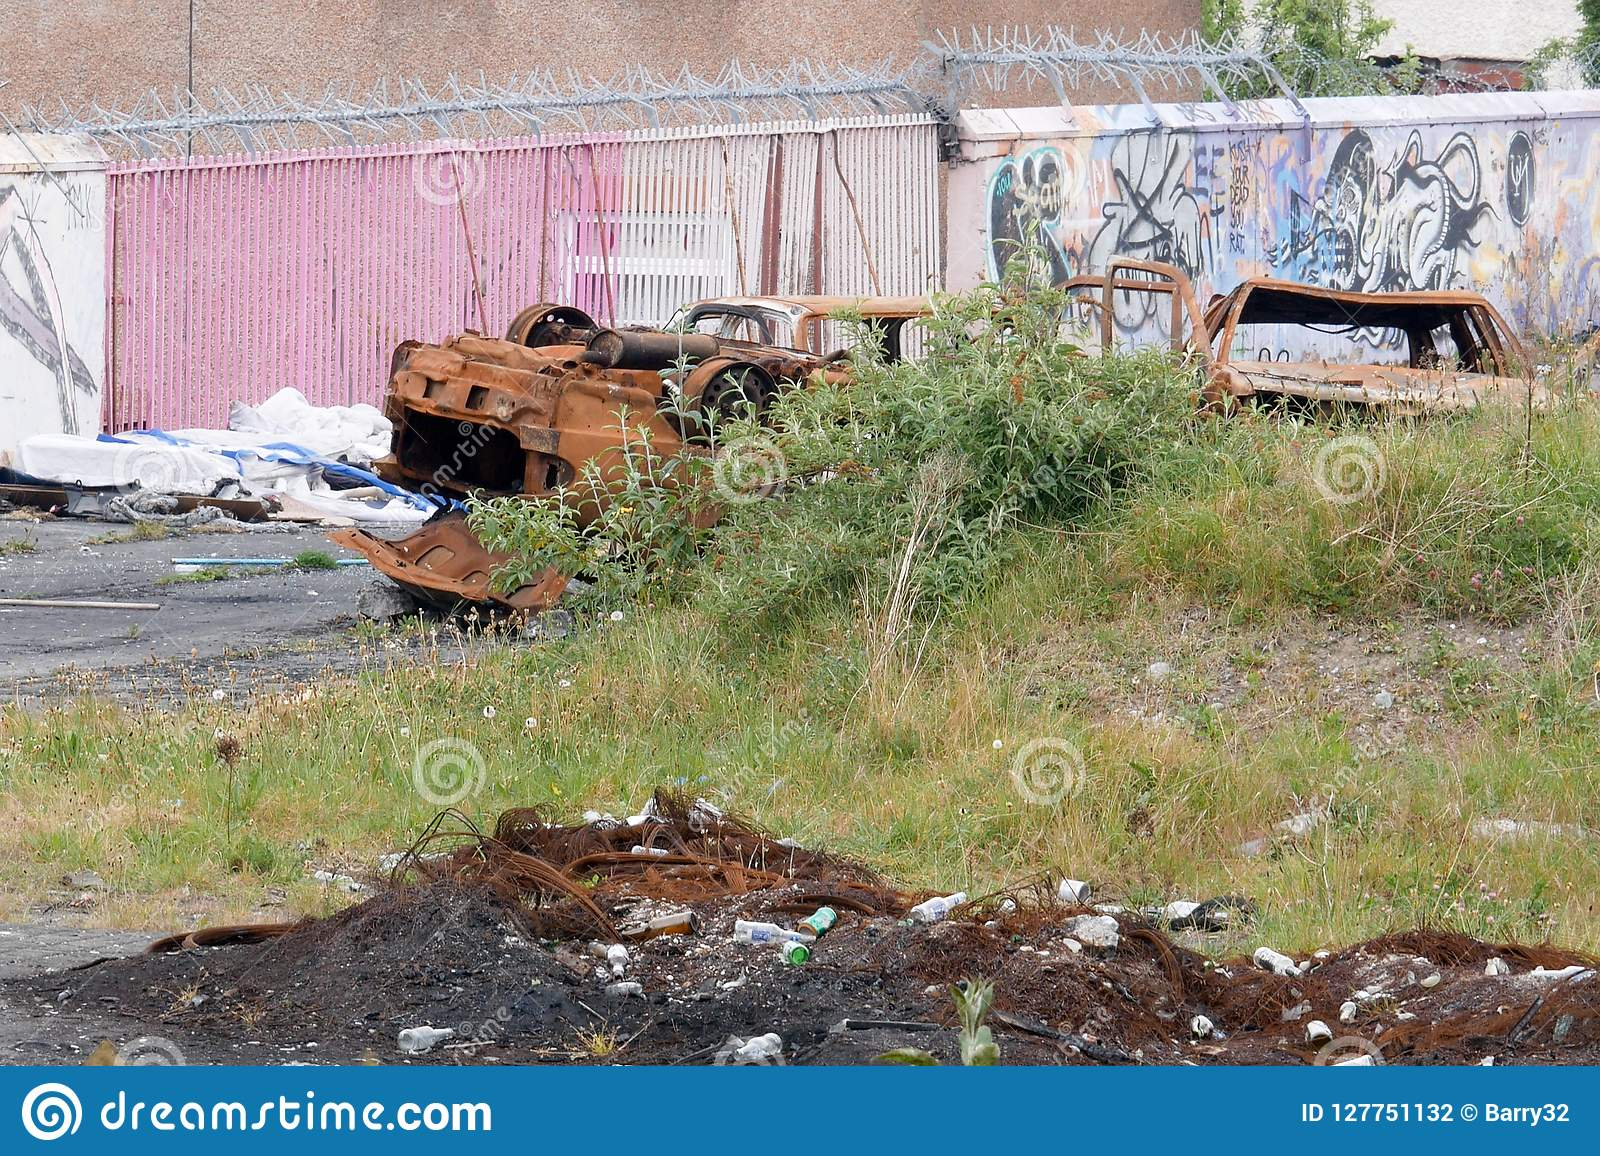 Stolen cars burnt and dumped in Dublin, Ireland